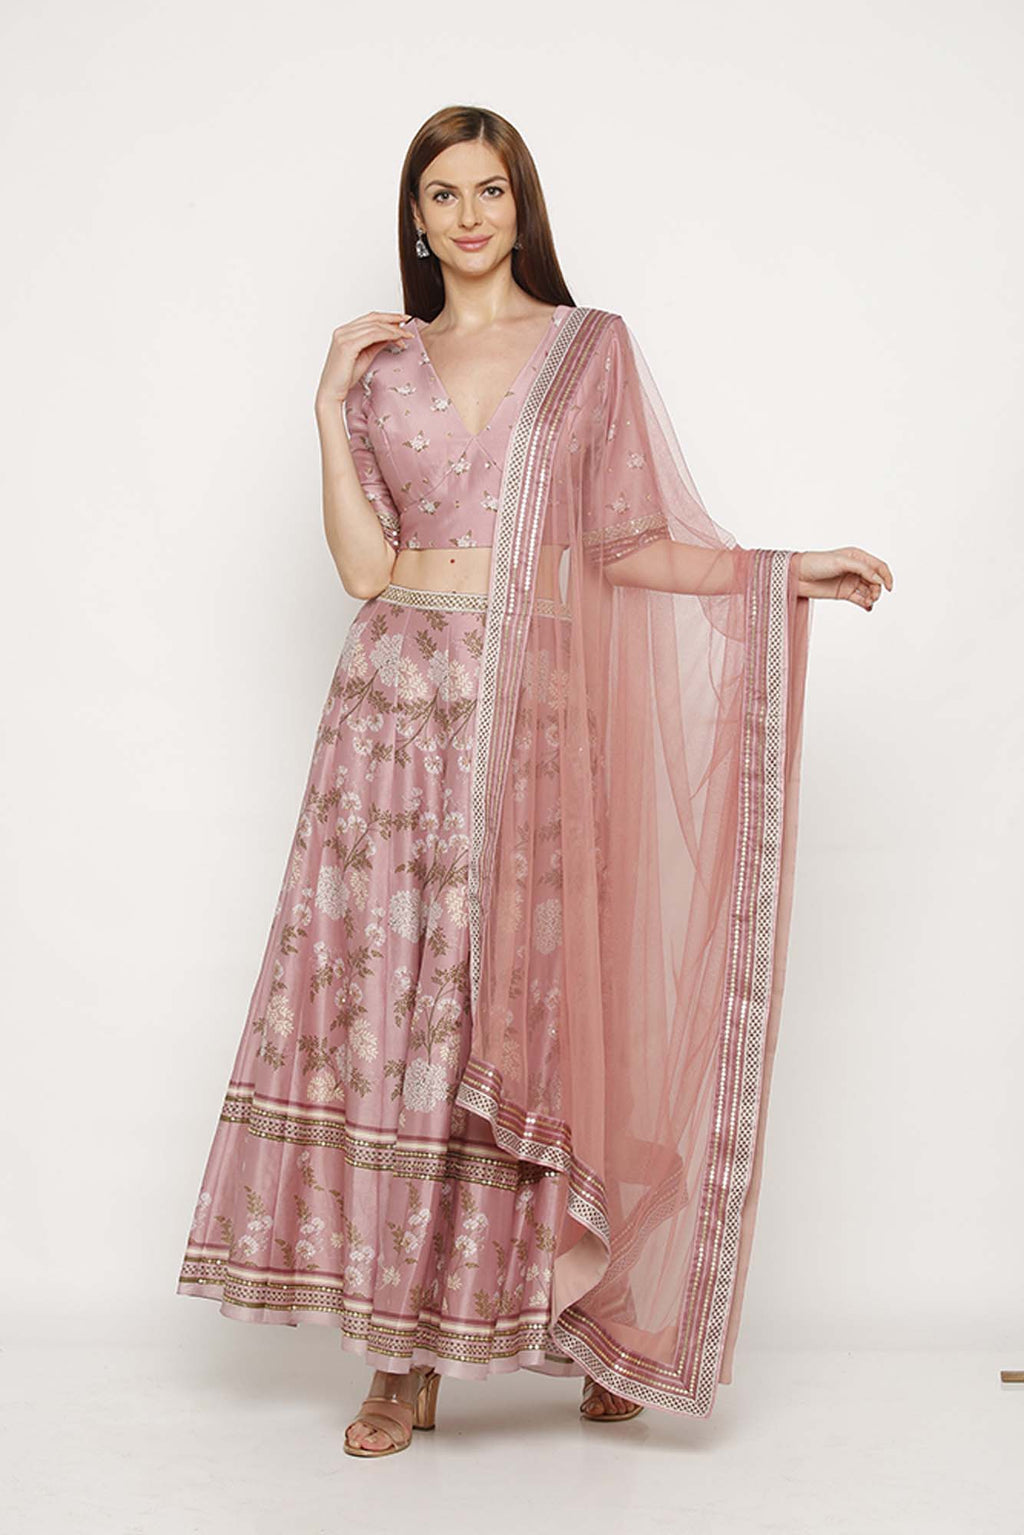 Printed Pink Skirt with Top and Dupatta - Riviera Closet